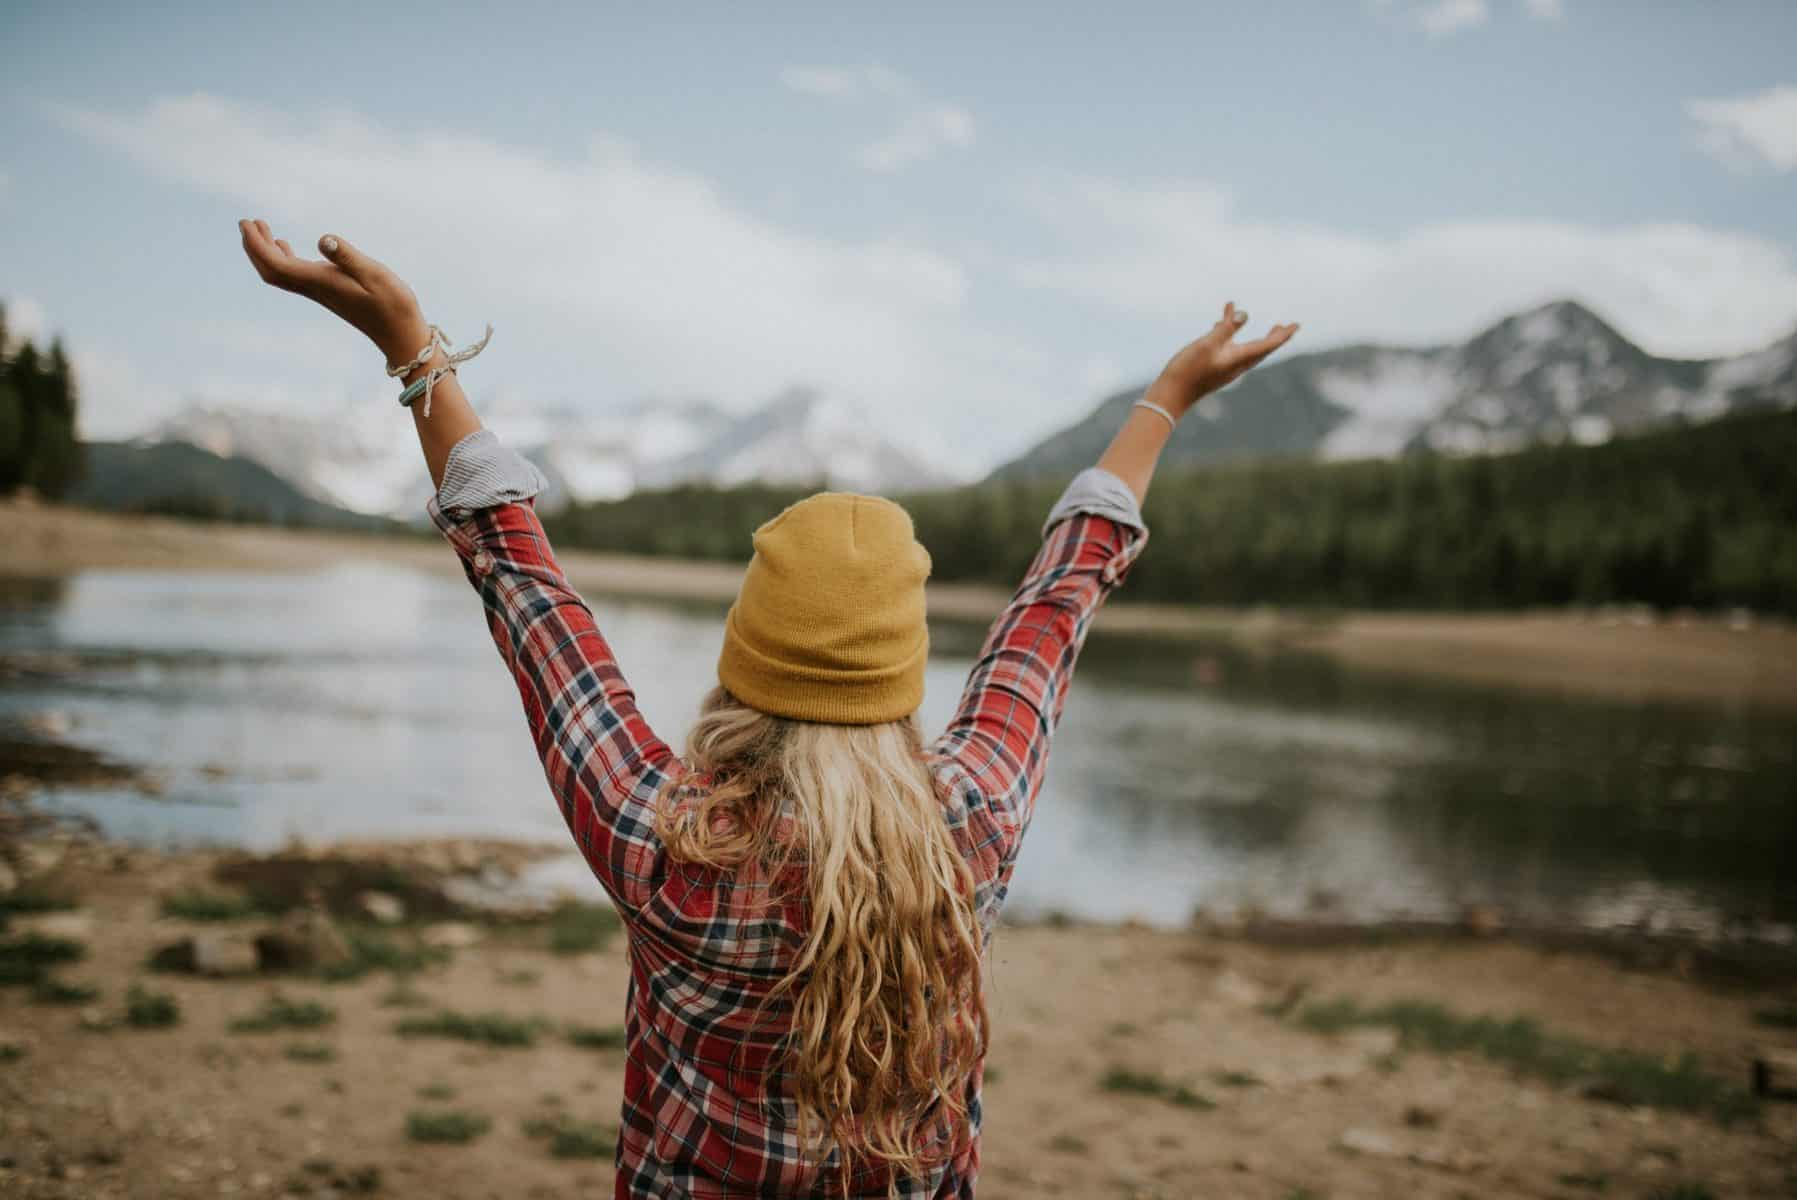 A woman excited to see nature.